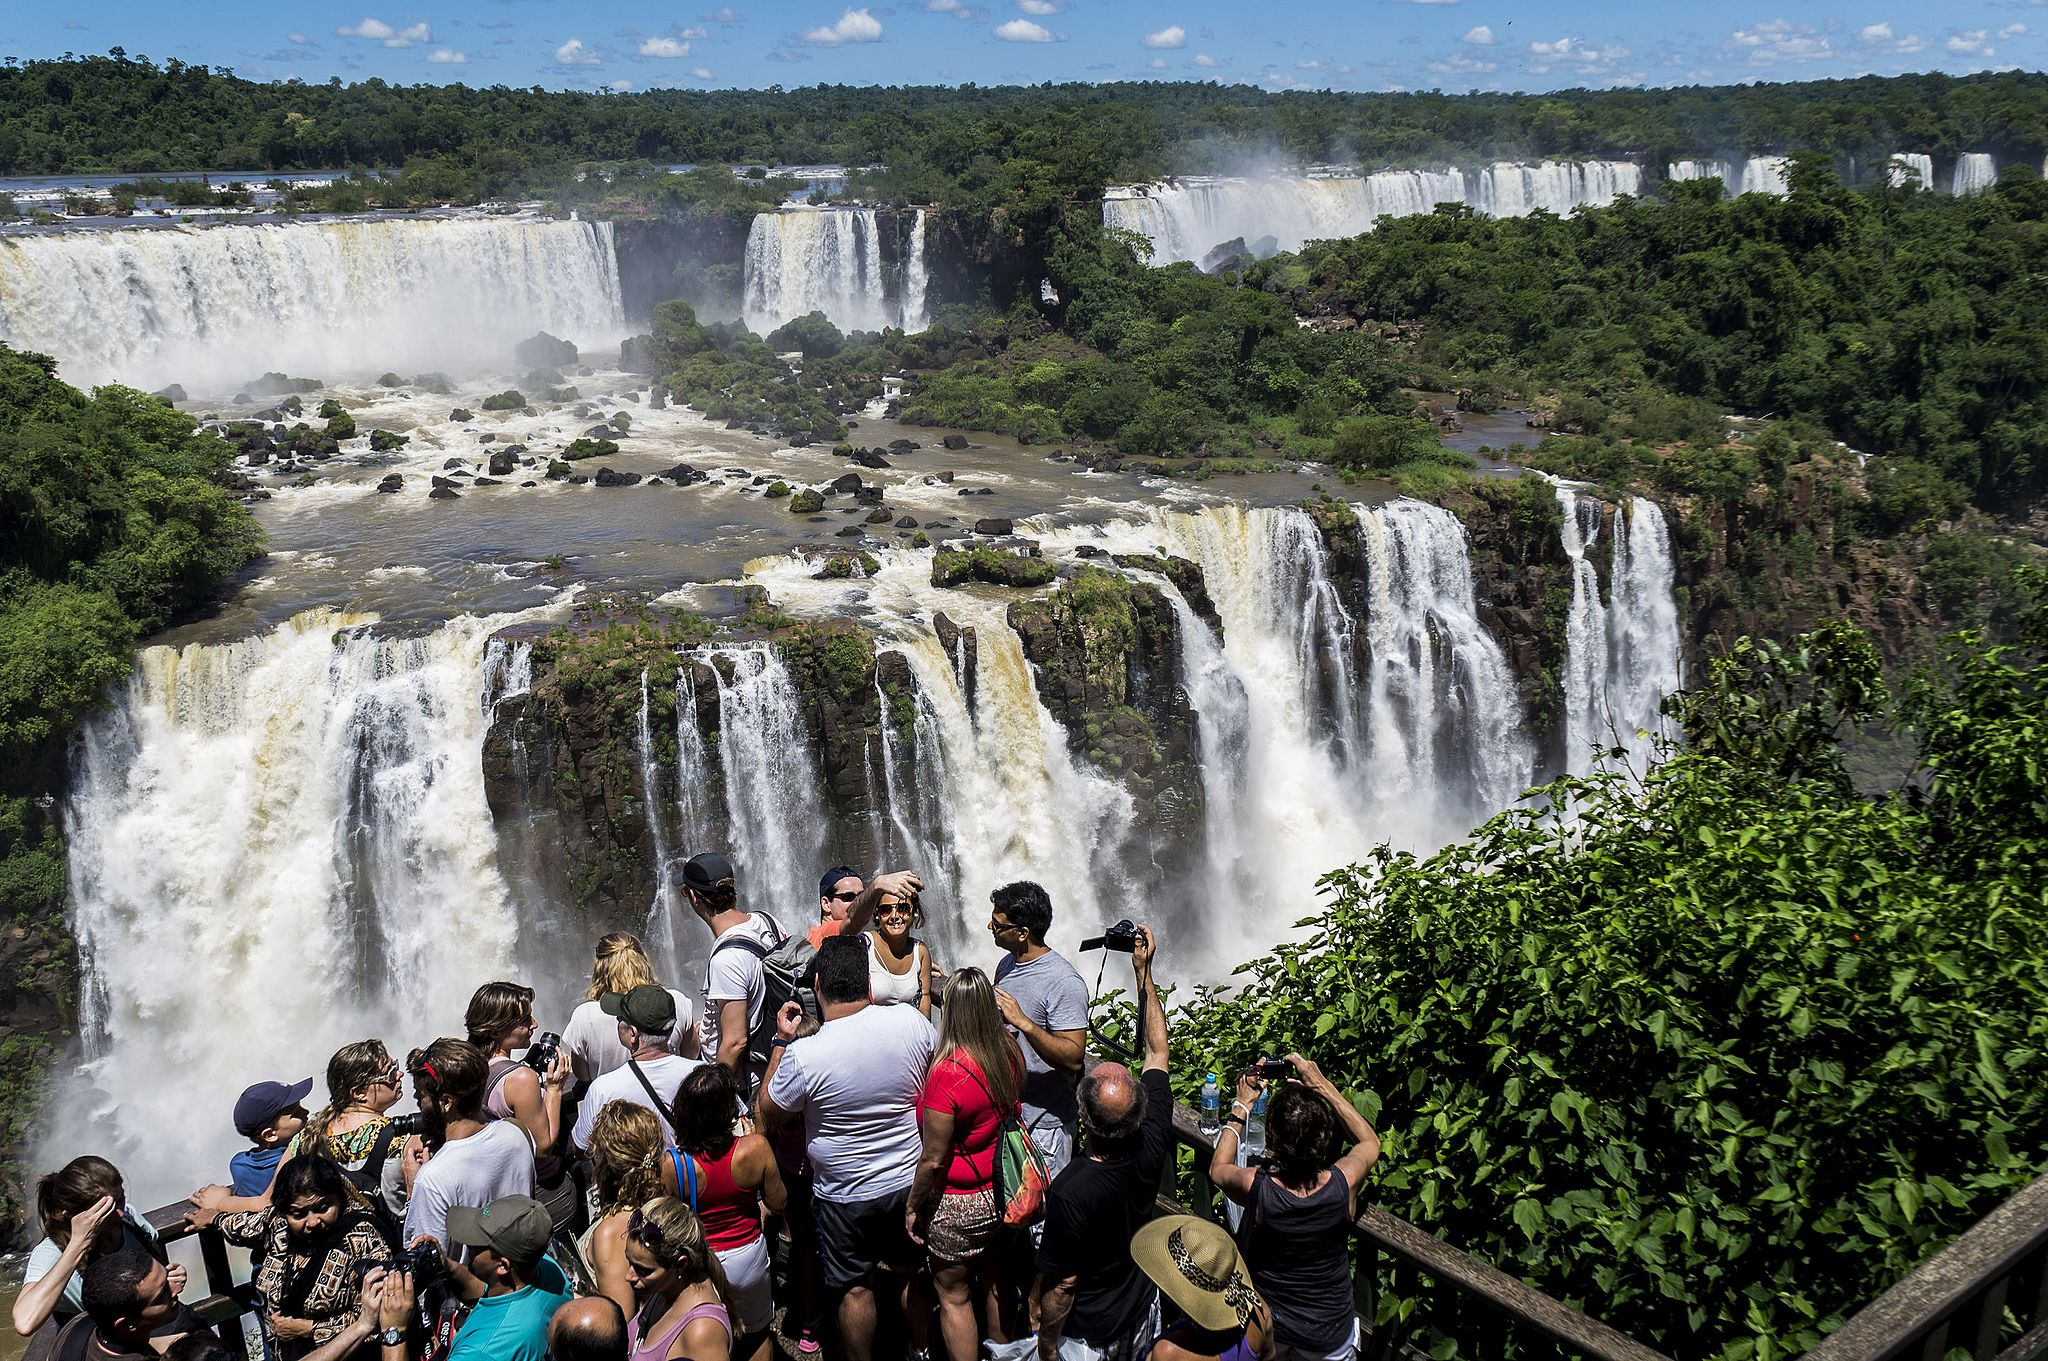 Parque Nacional do Iguaçú by Deni Williams (CC)